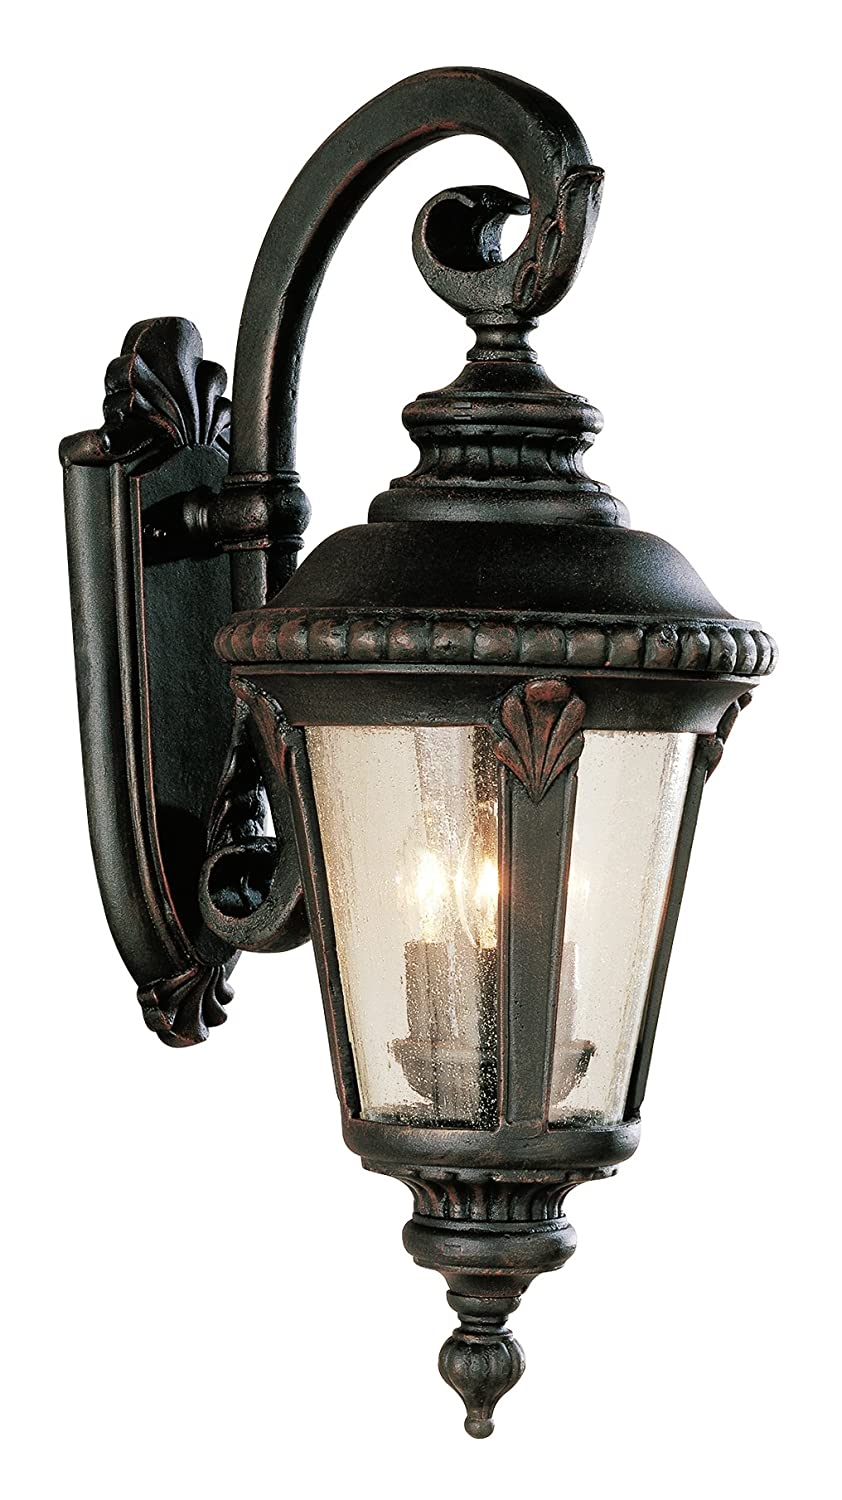 Trans globe lighting 5044 rt outdoor commons 25 wall lantern rust trans globe lighting 5044 rt outdoor commons 25 wall lantern rust wall sconces amazon arubaitofo Images